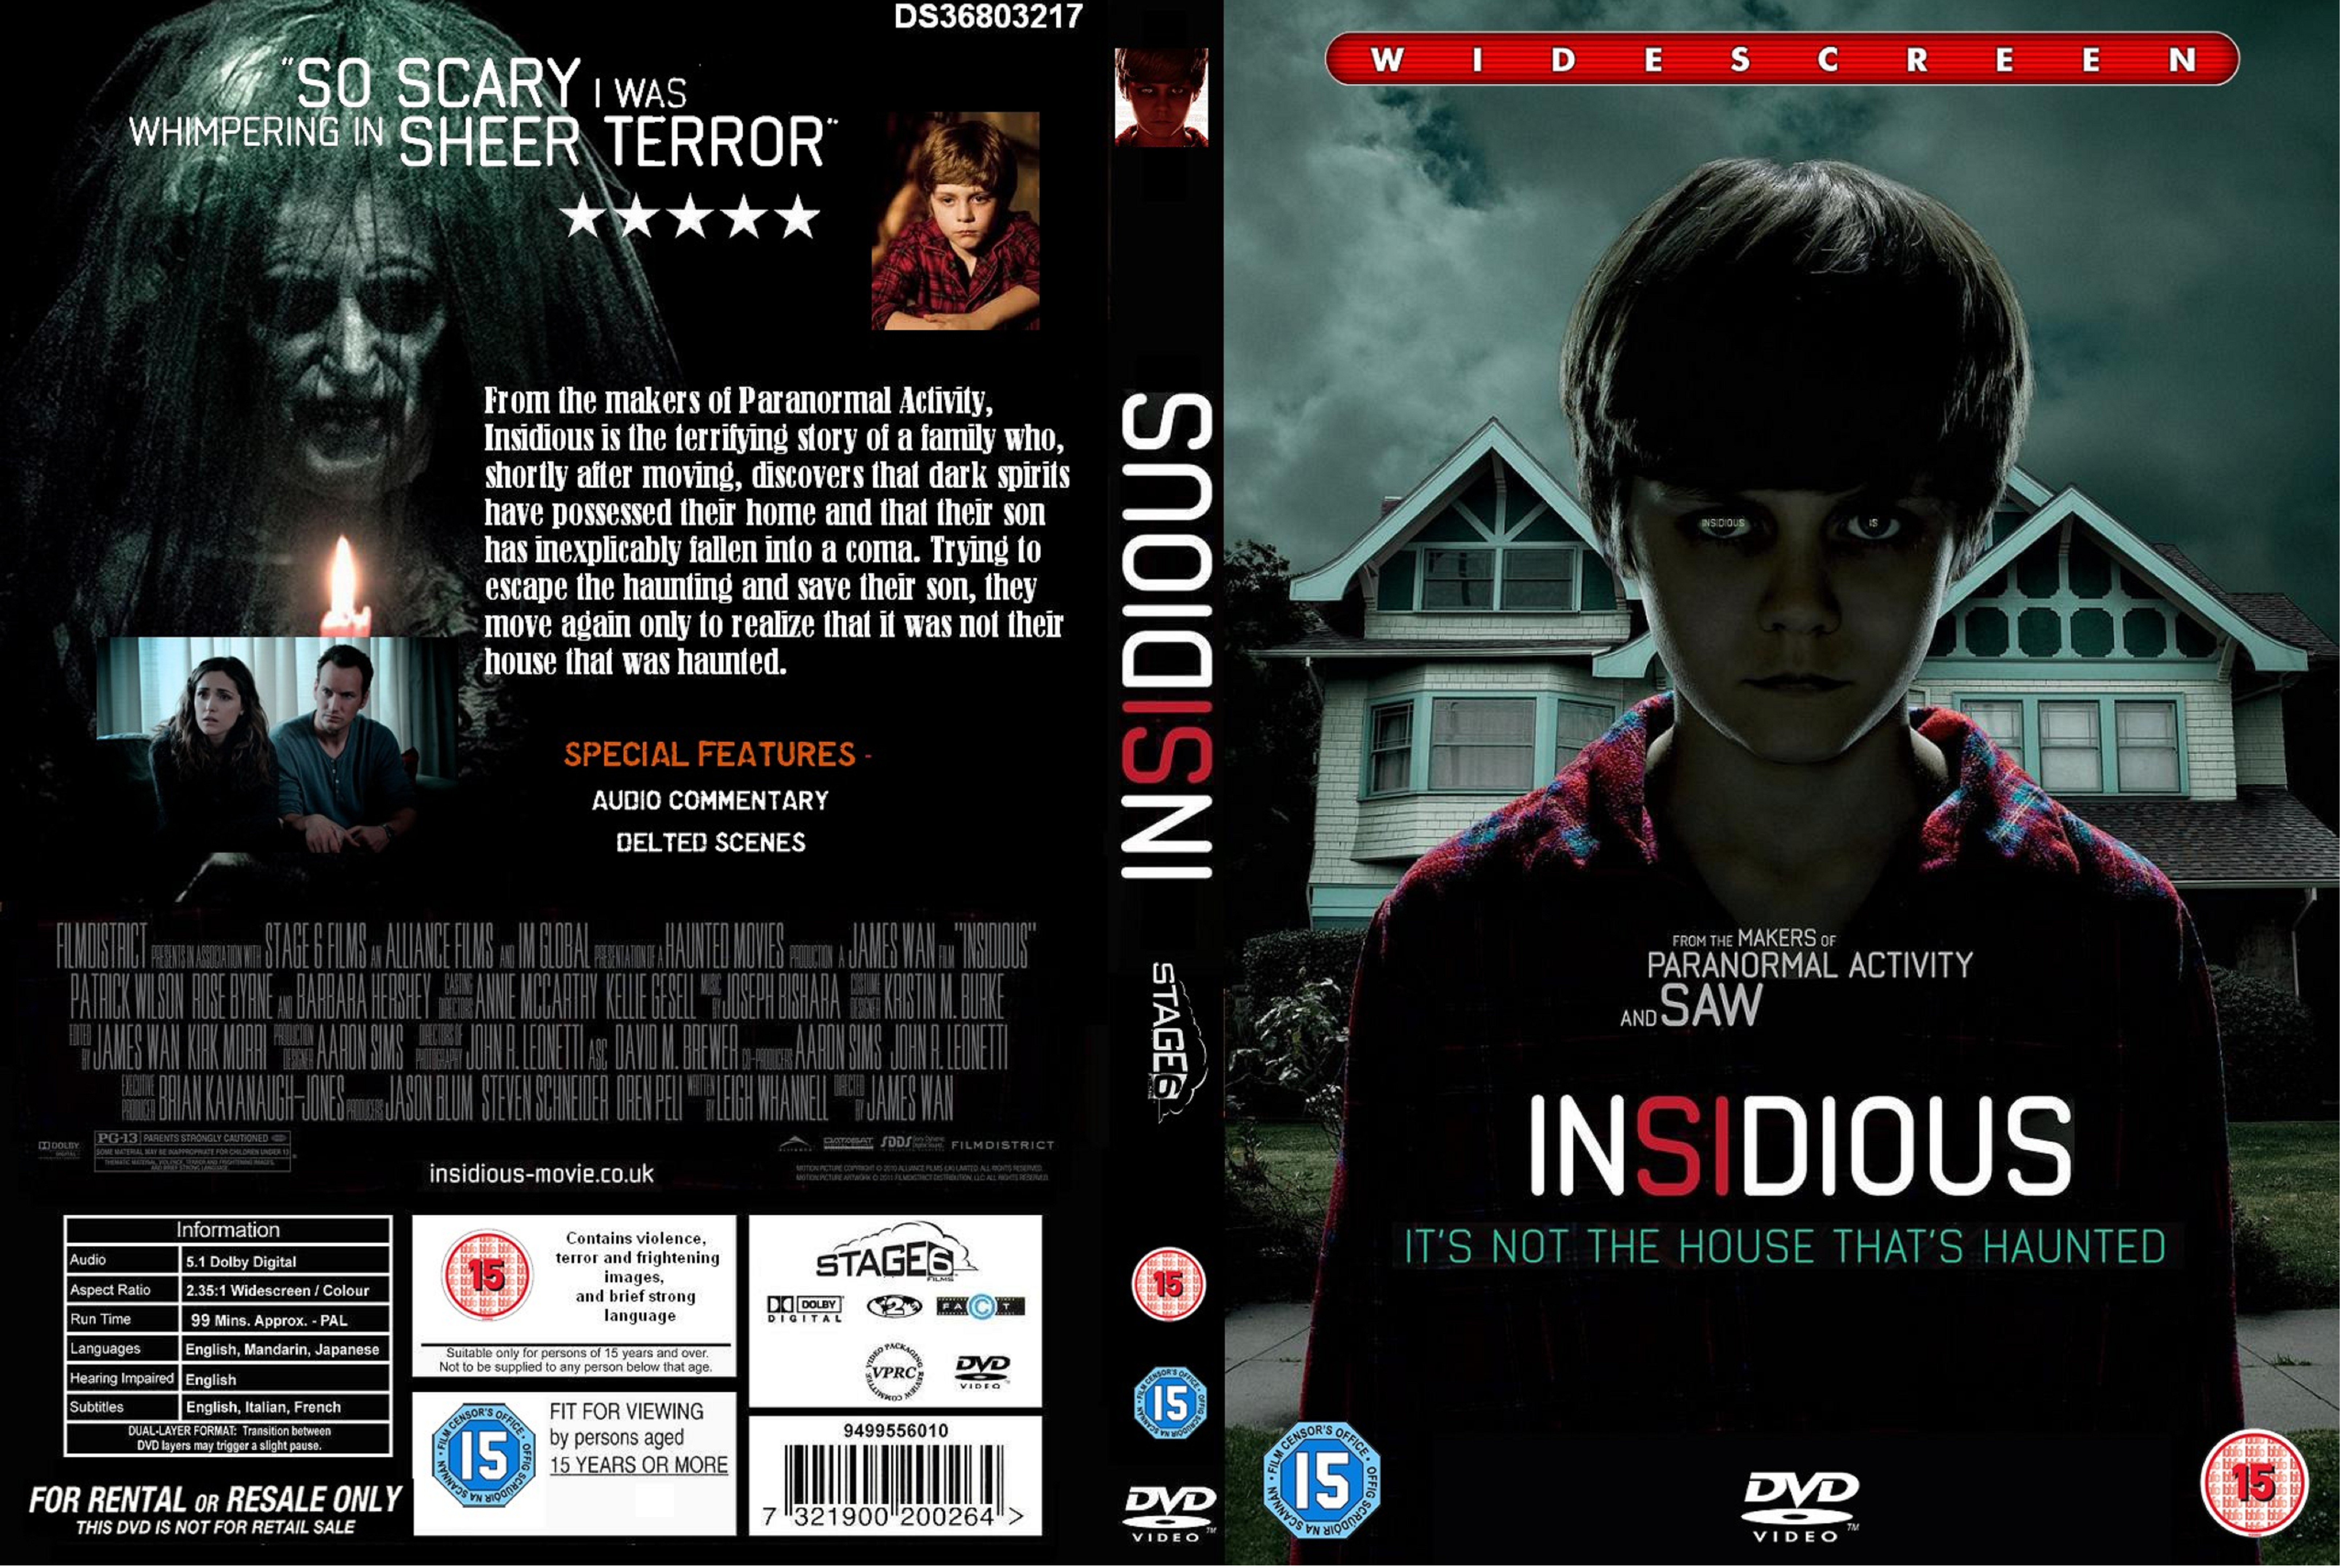 Insidious Cover Pictures to pin on Pinterest